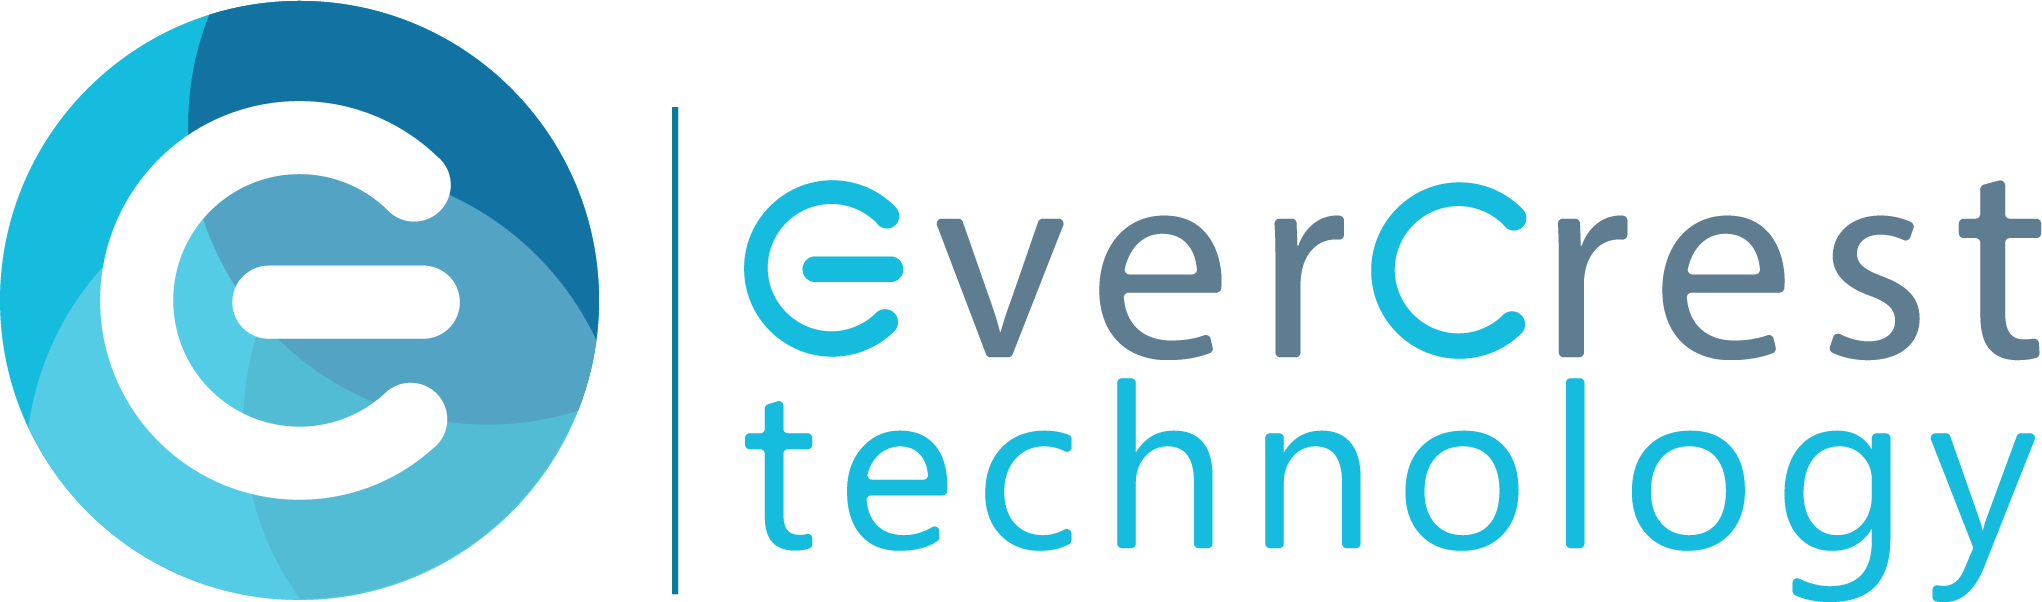 EverCrest Technology, Inc